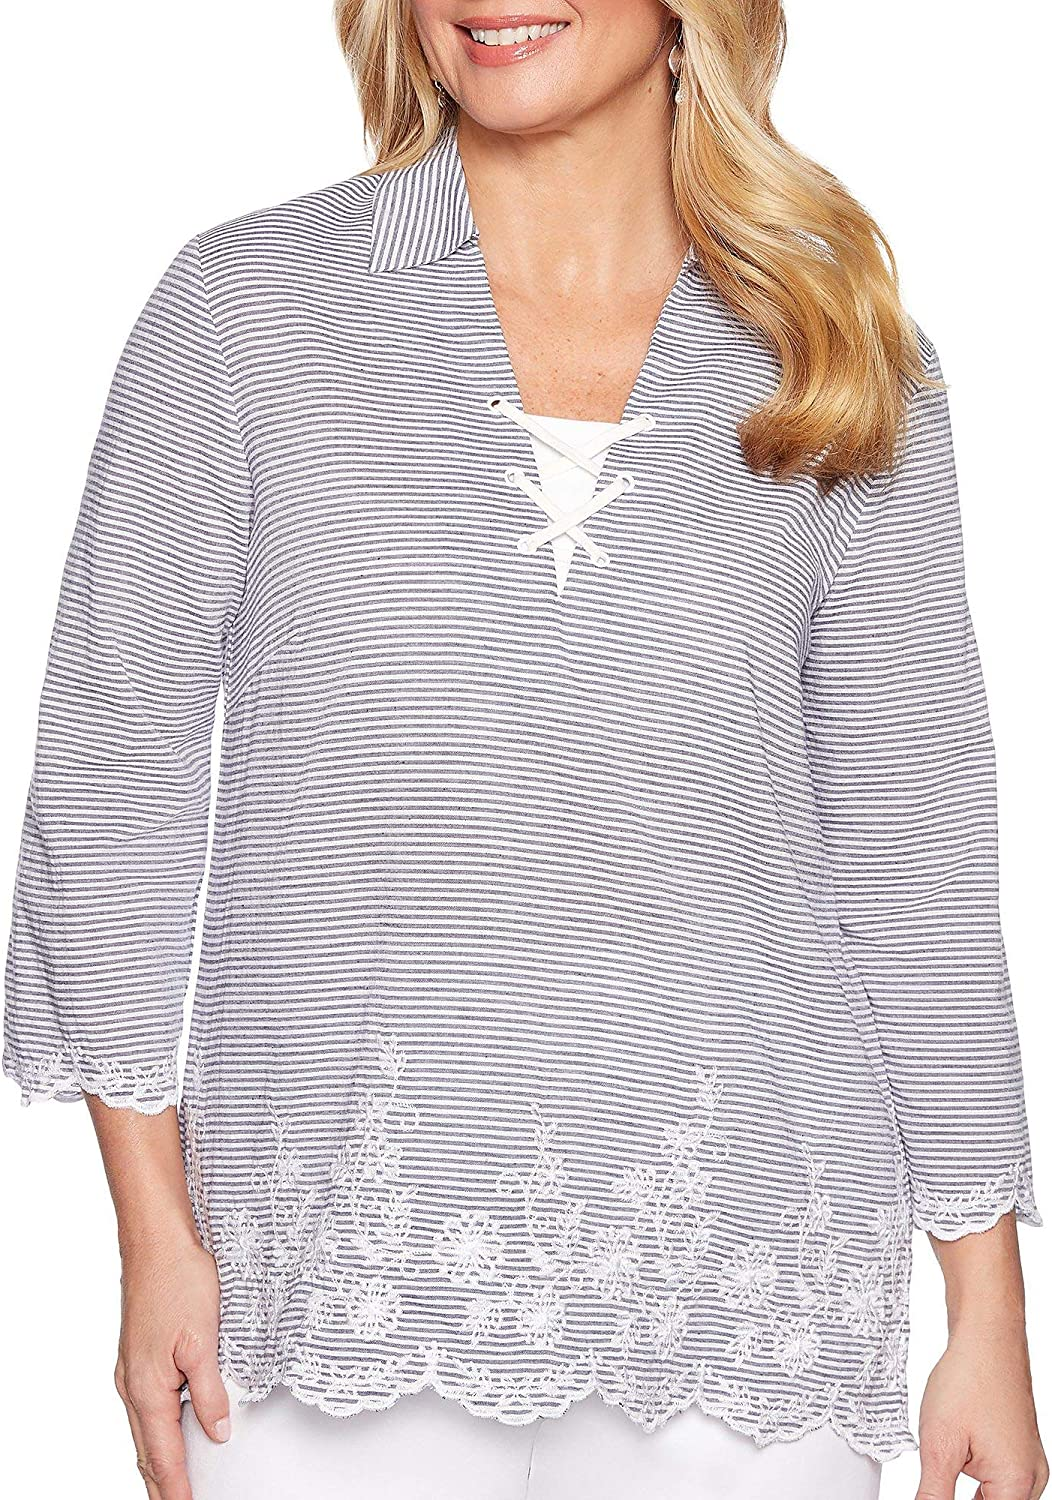 Alfred Dunner Womens Smooth Sailing Striped Floral Top